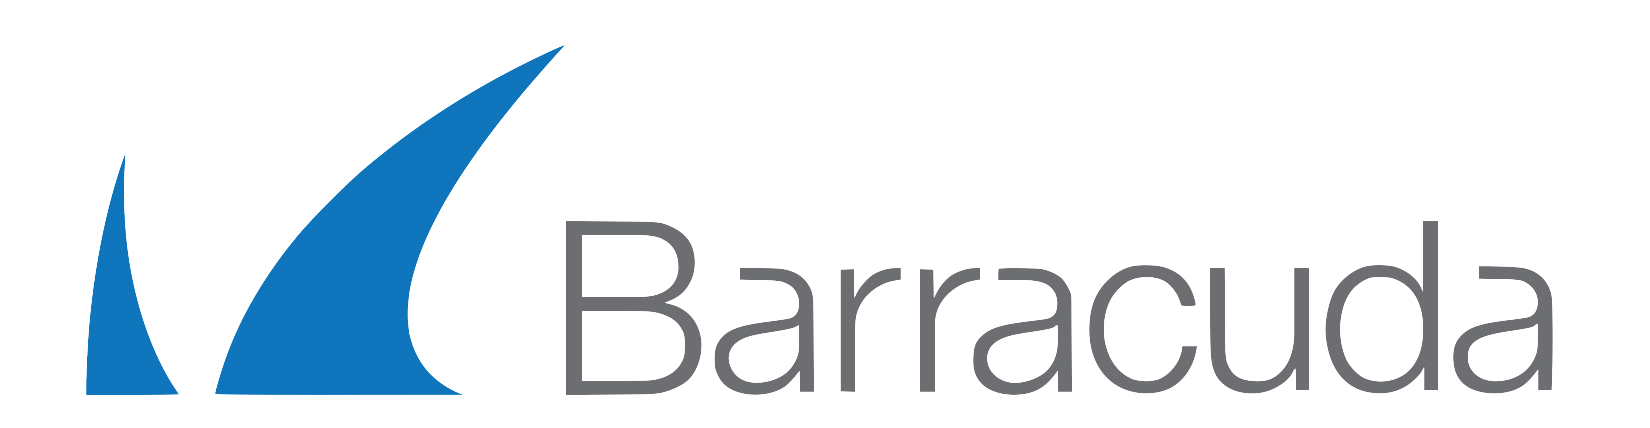 barracuda_logo